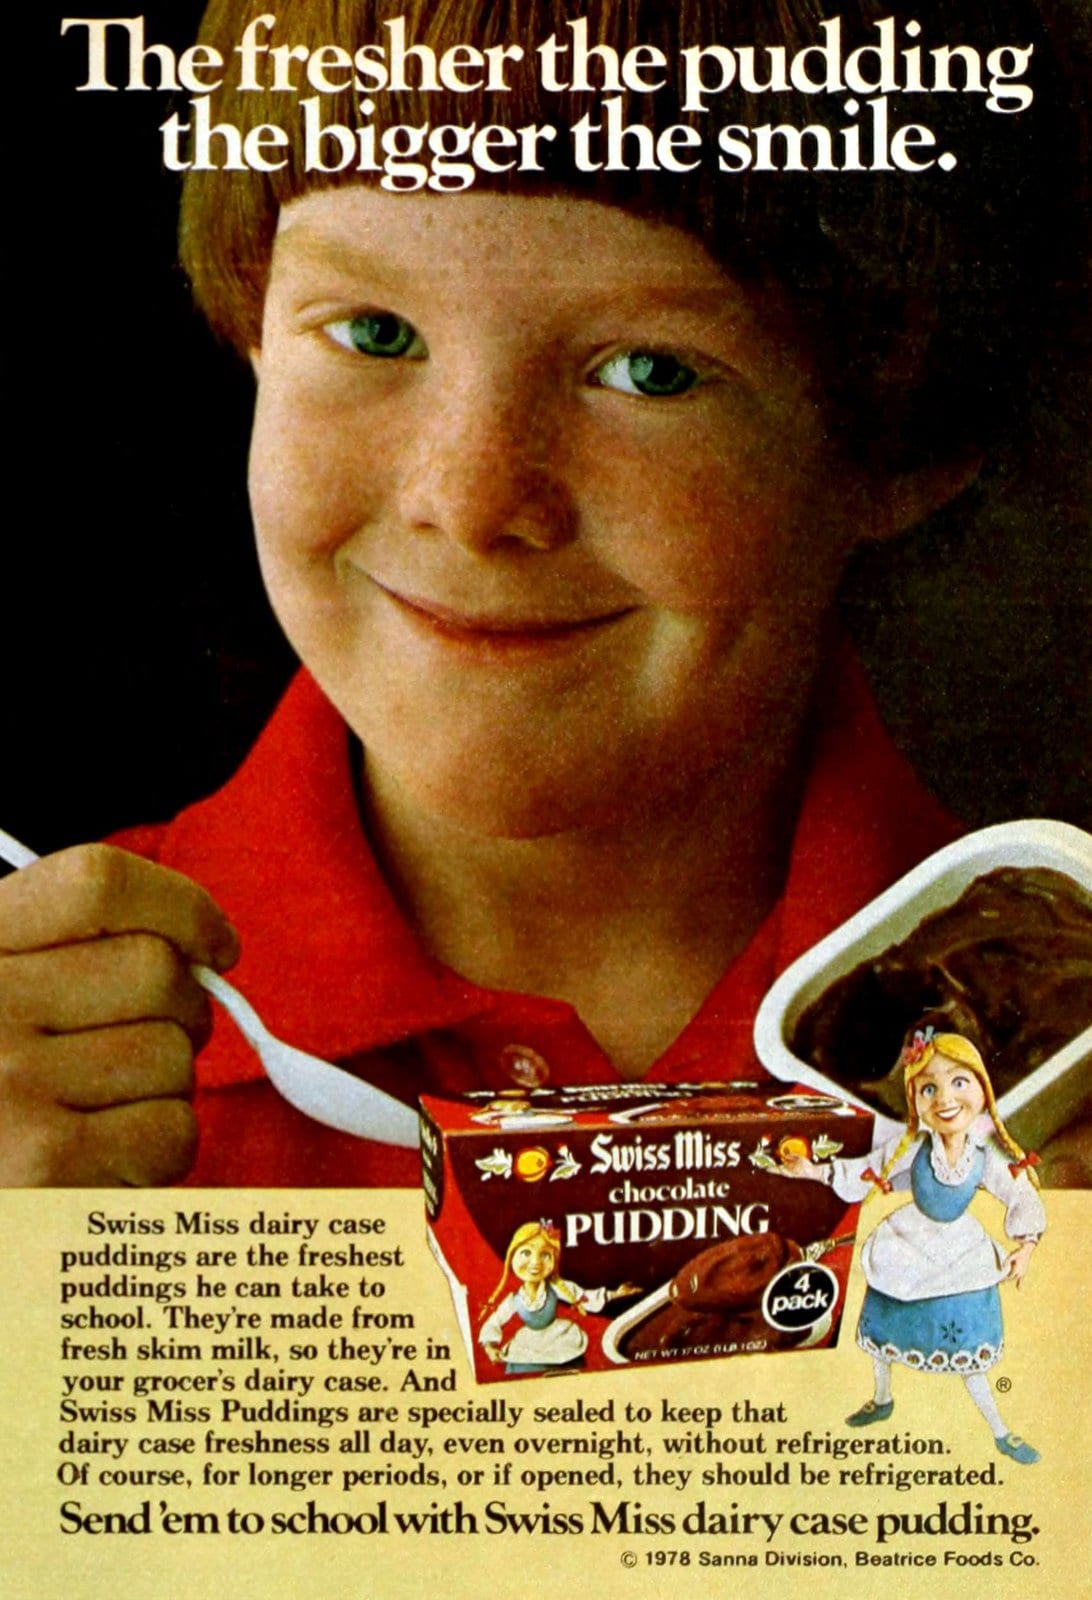 Vintage seventies Swiss Miss chocolate pudding cups 4-pack (1978)